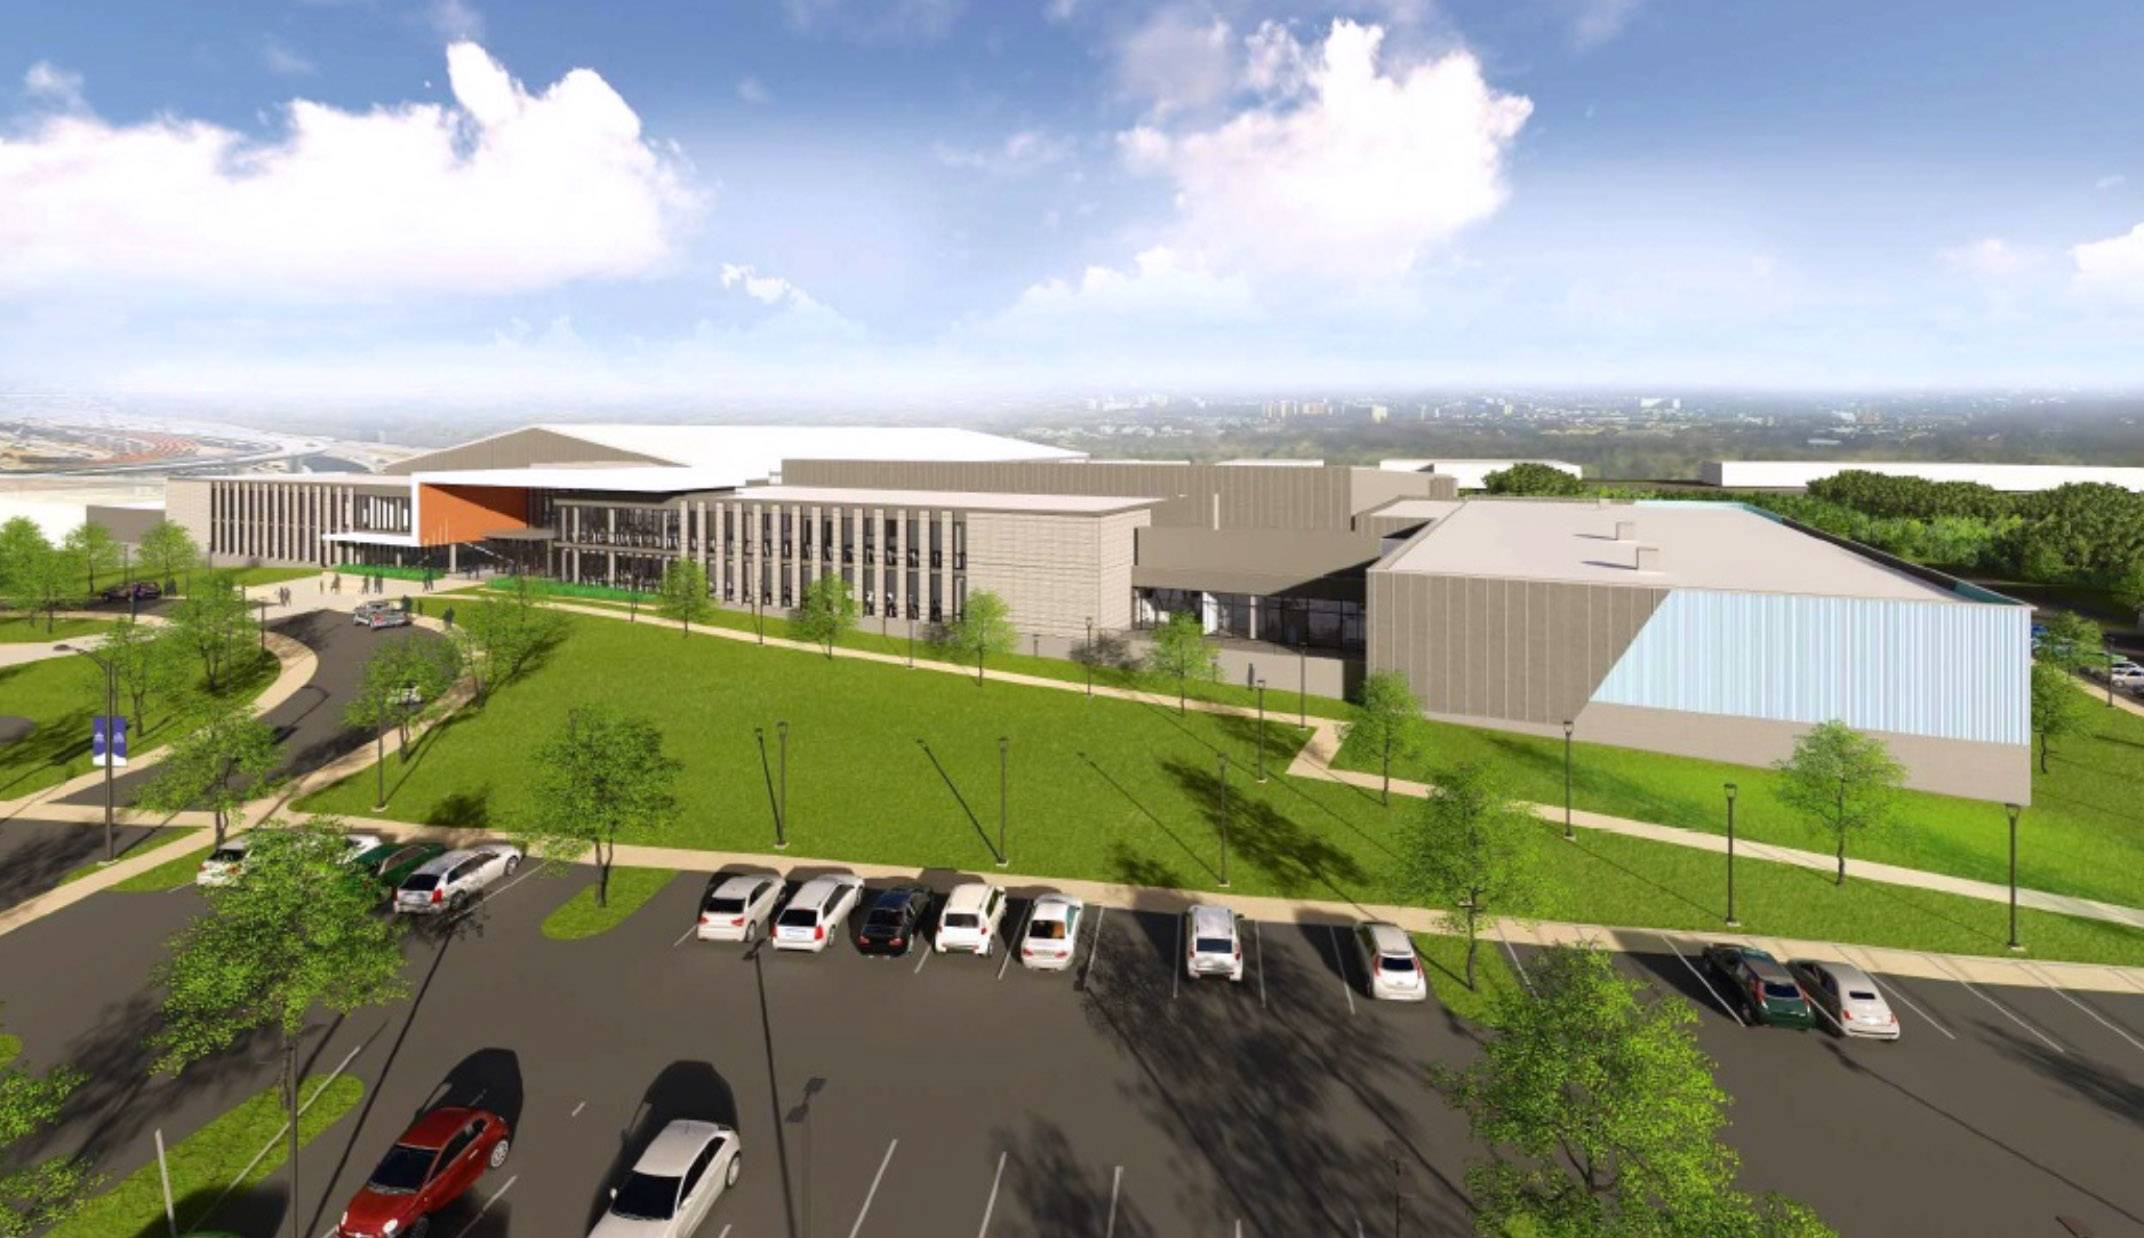 A sprawling athletic center has been proposed for land that's now an office complex in Lincolnshire.